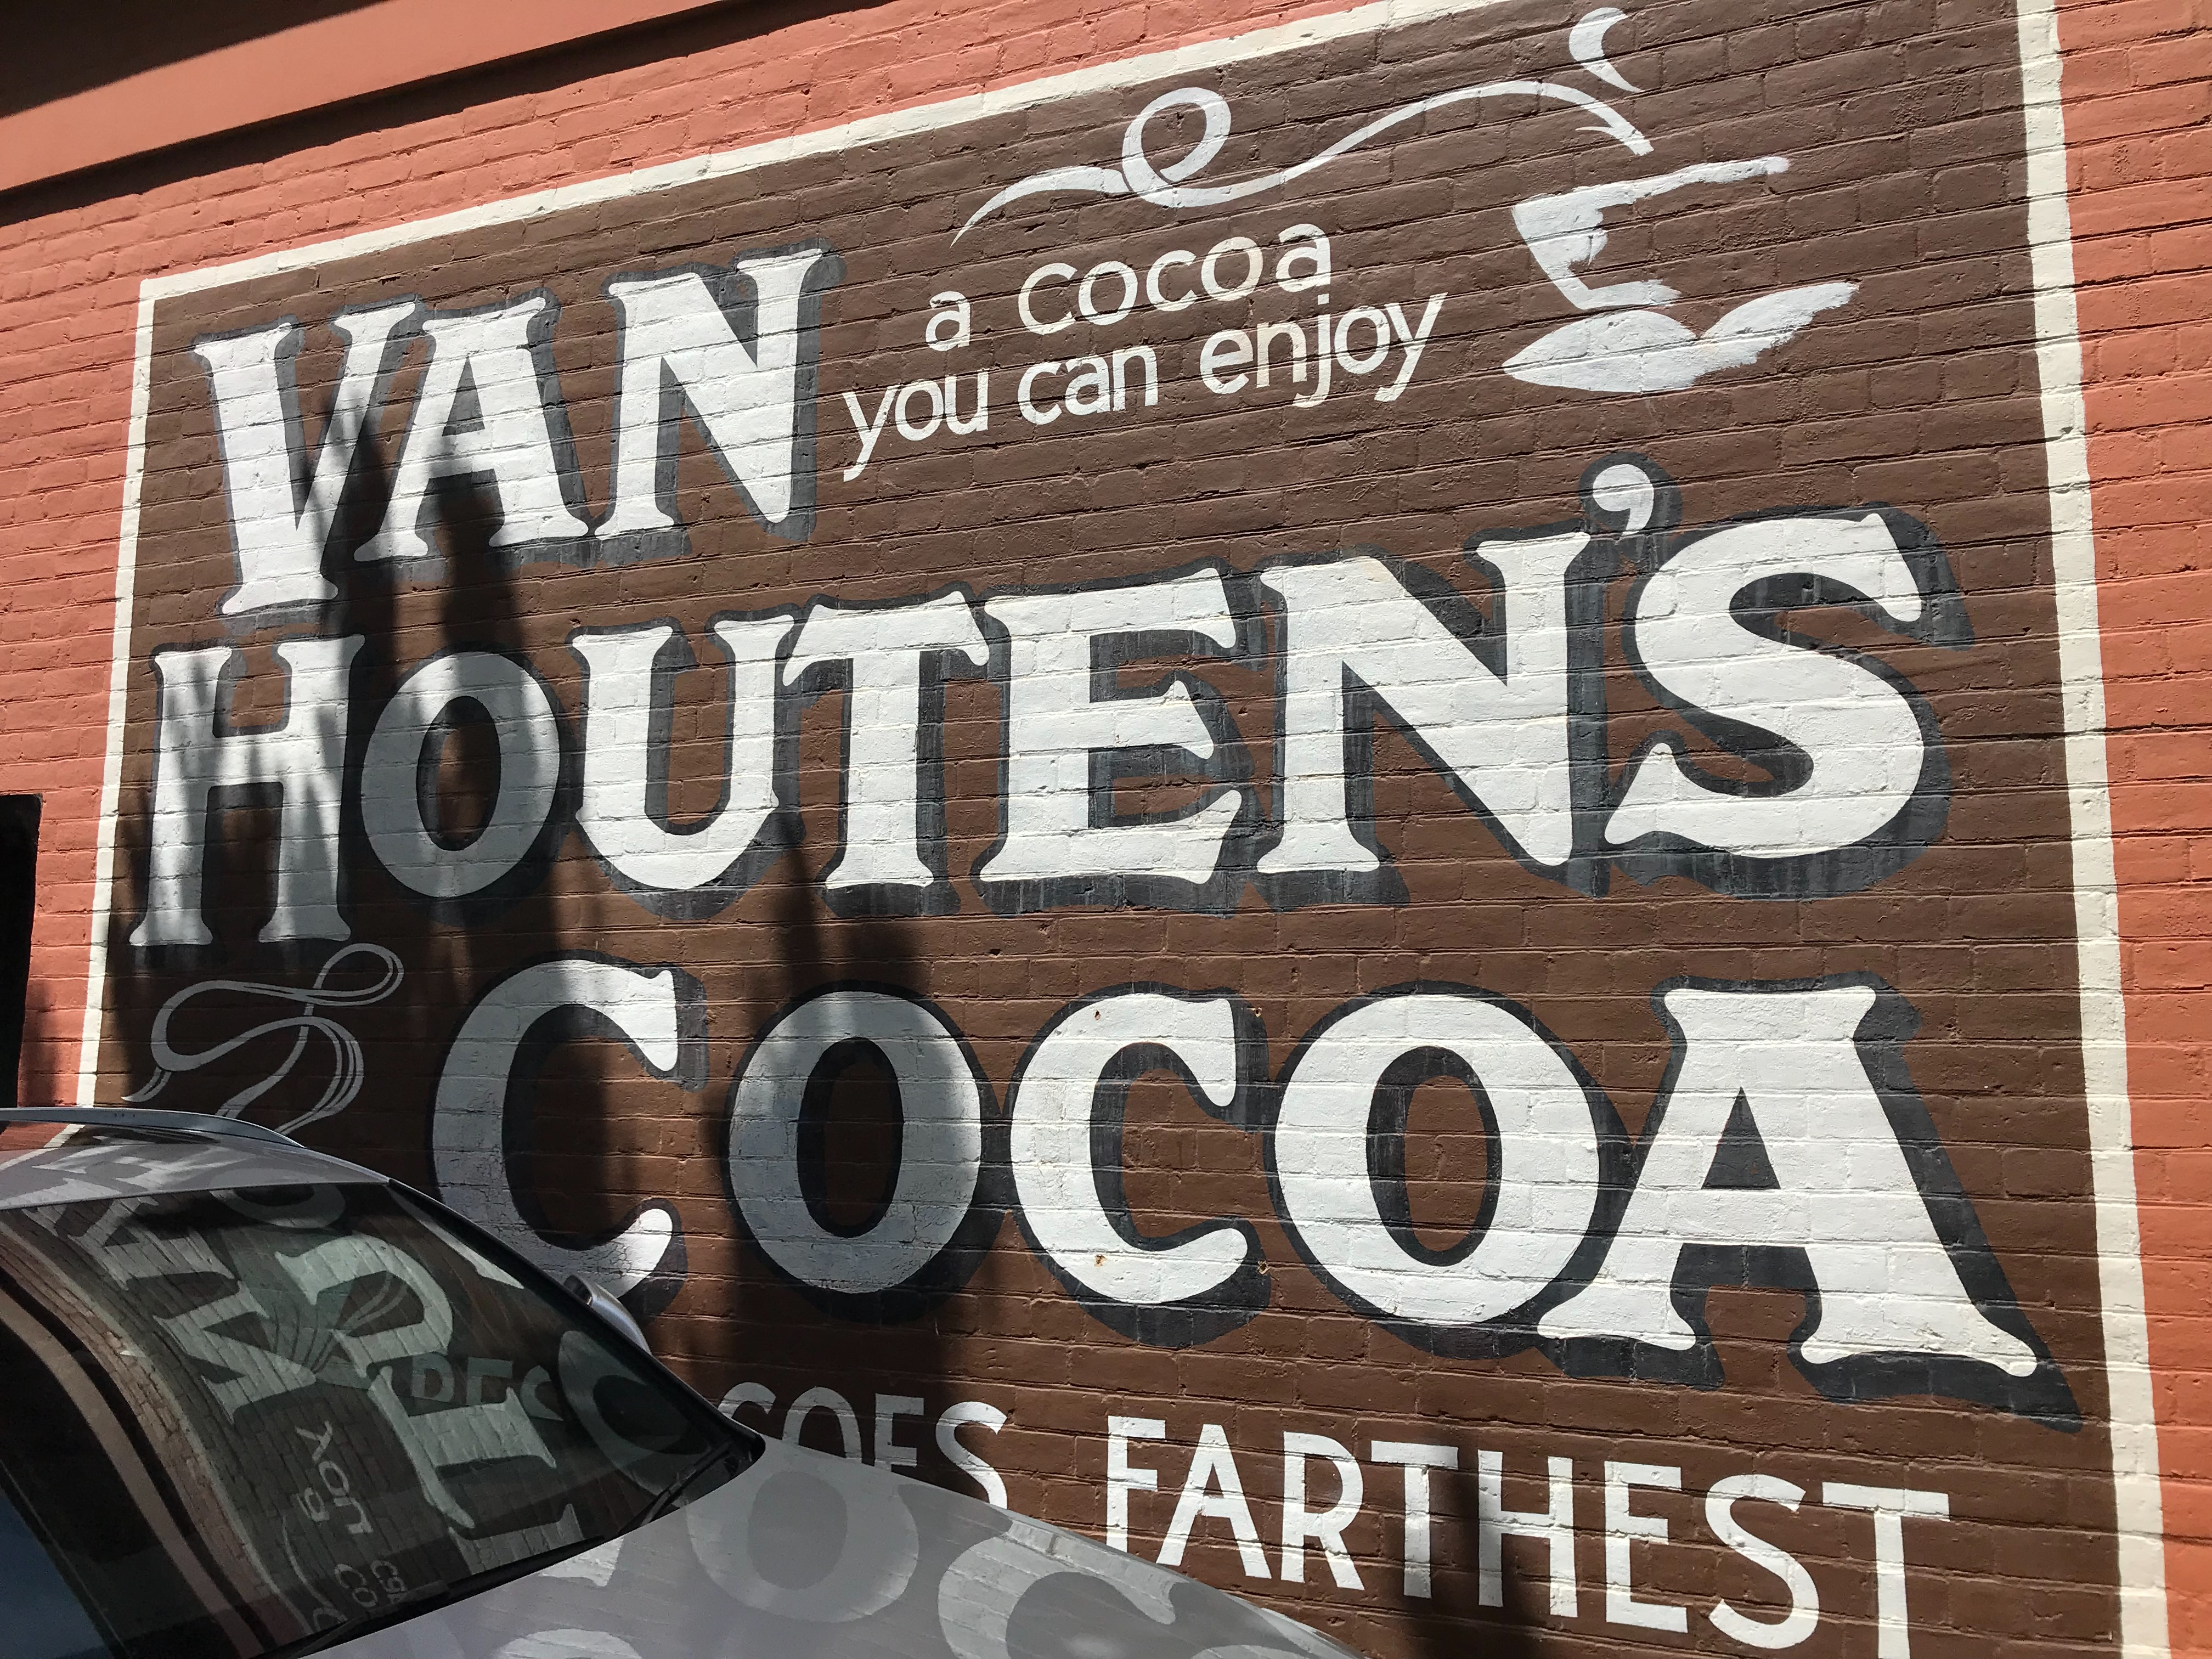 file echuca van houten s cocoa advertisment jpg wikimedia commons